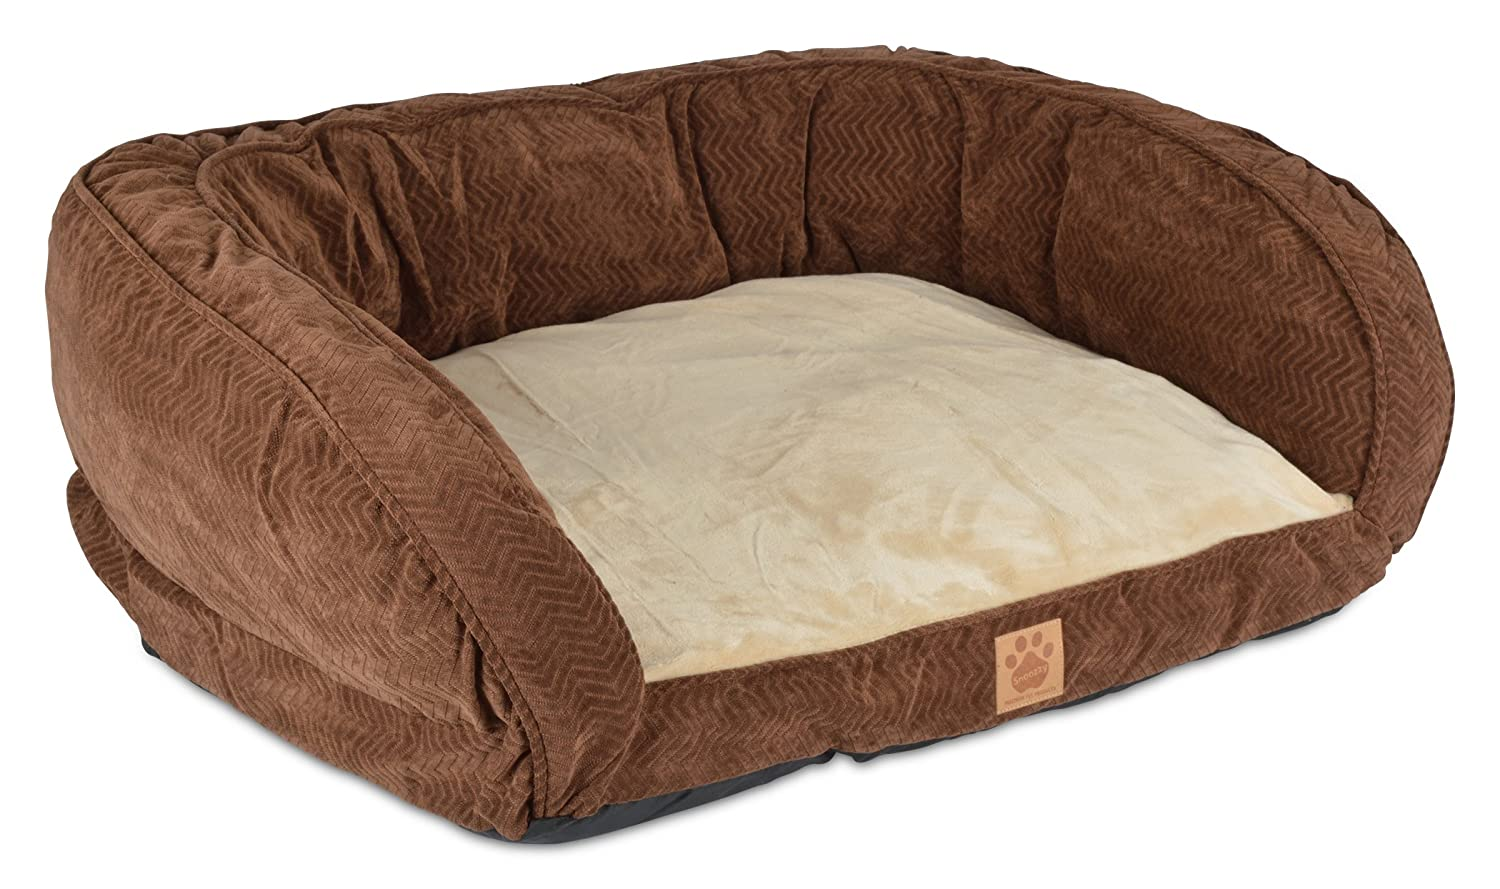 Precision Pet Daydreamer Gusset Couch, 35 by 27 by 11-Inch, Chocolate